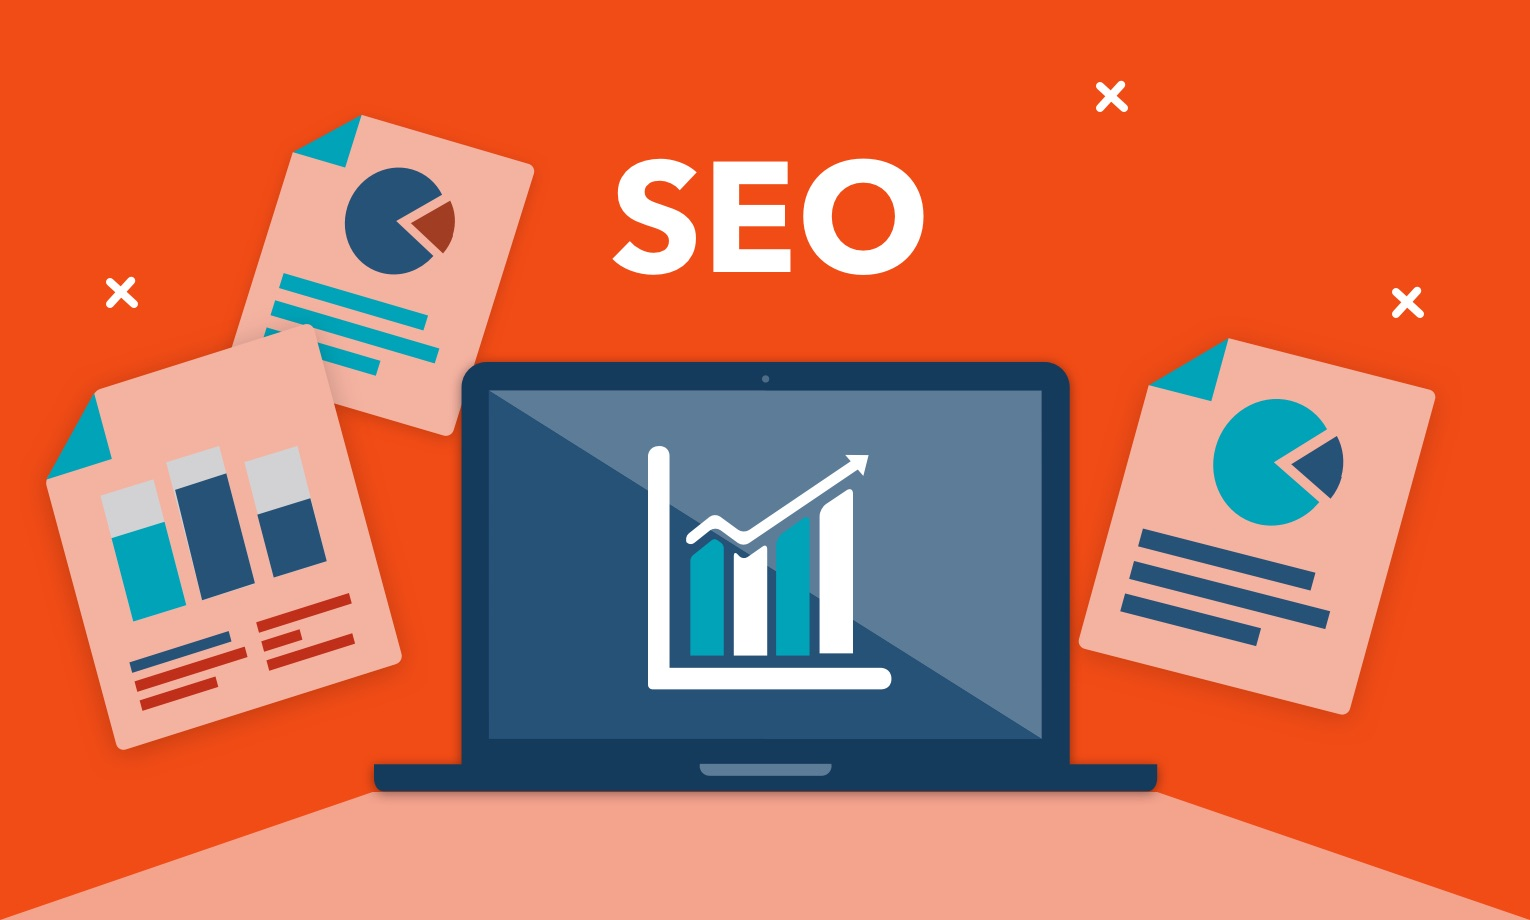 5 Recommendations To Improve Search Engine Rankings